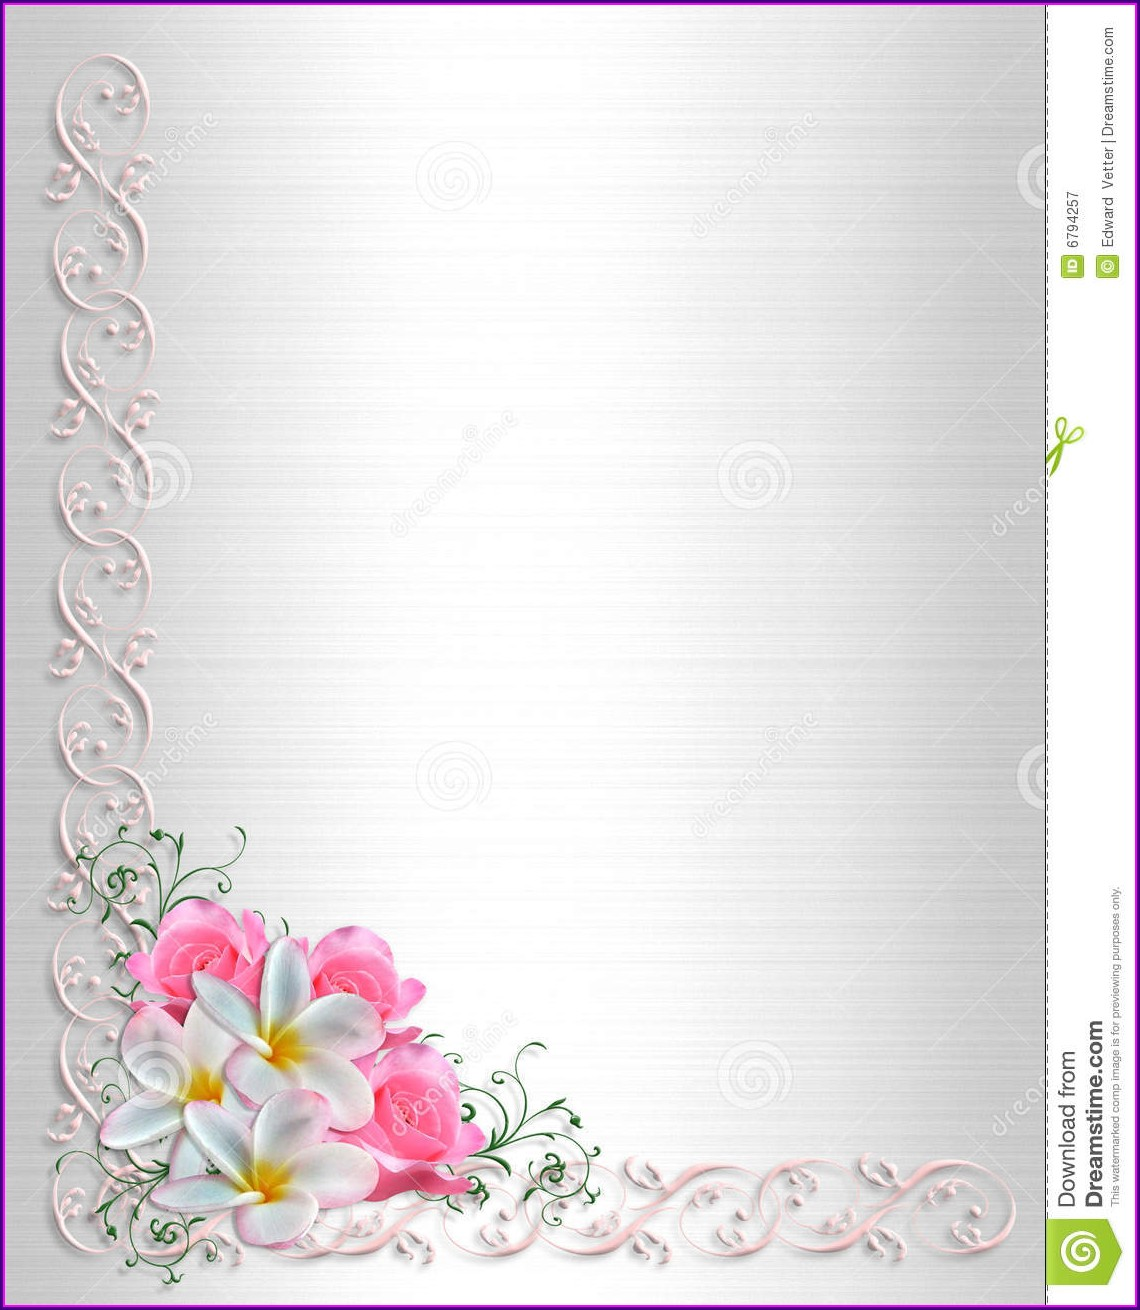 Wedding Invitation Background Hd Images Download